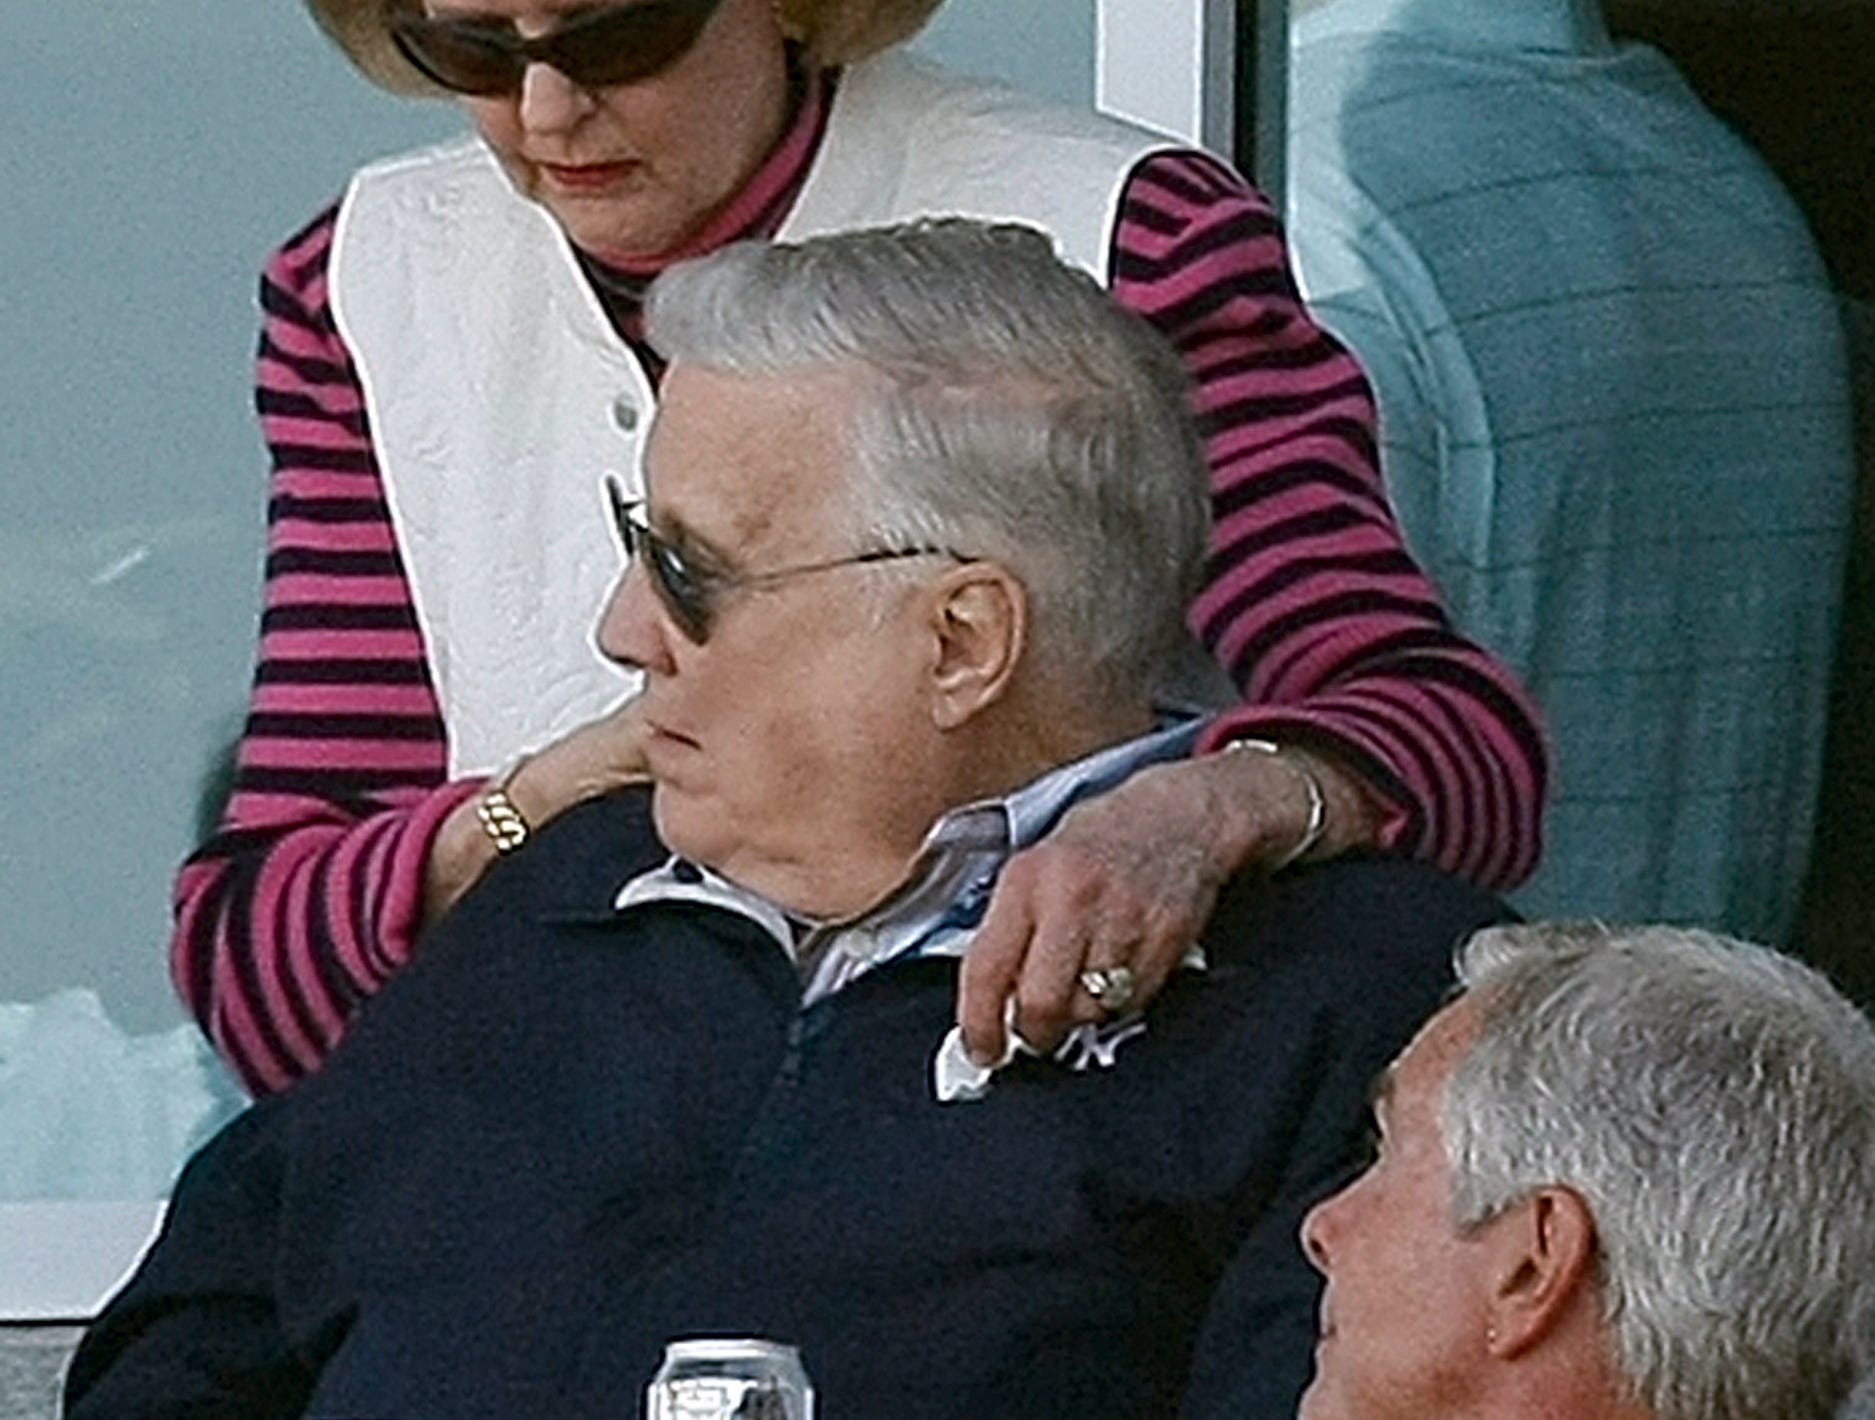 New York Yankees vice chairperson Joan Steinbrenner is shown with her husband,  Yankees owner George Steinbrenner, during the Yankees' spring training baseball loss to the Atlanta Braves on Saturday, March 7, 2009, at Steinbrenner Field in Tampa, Fla. (AP Photo/Kathy Willens)